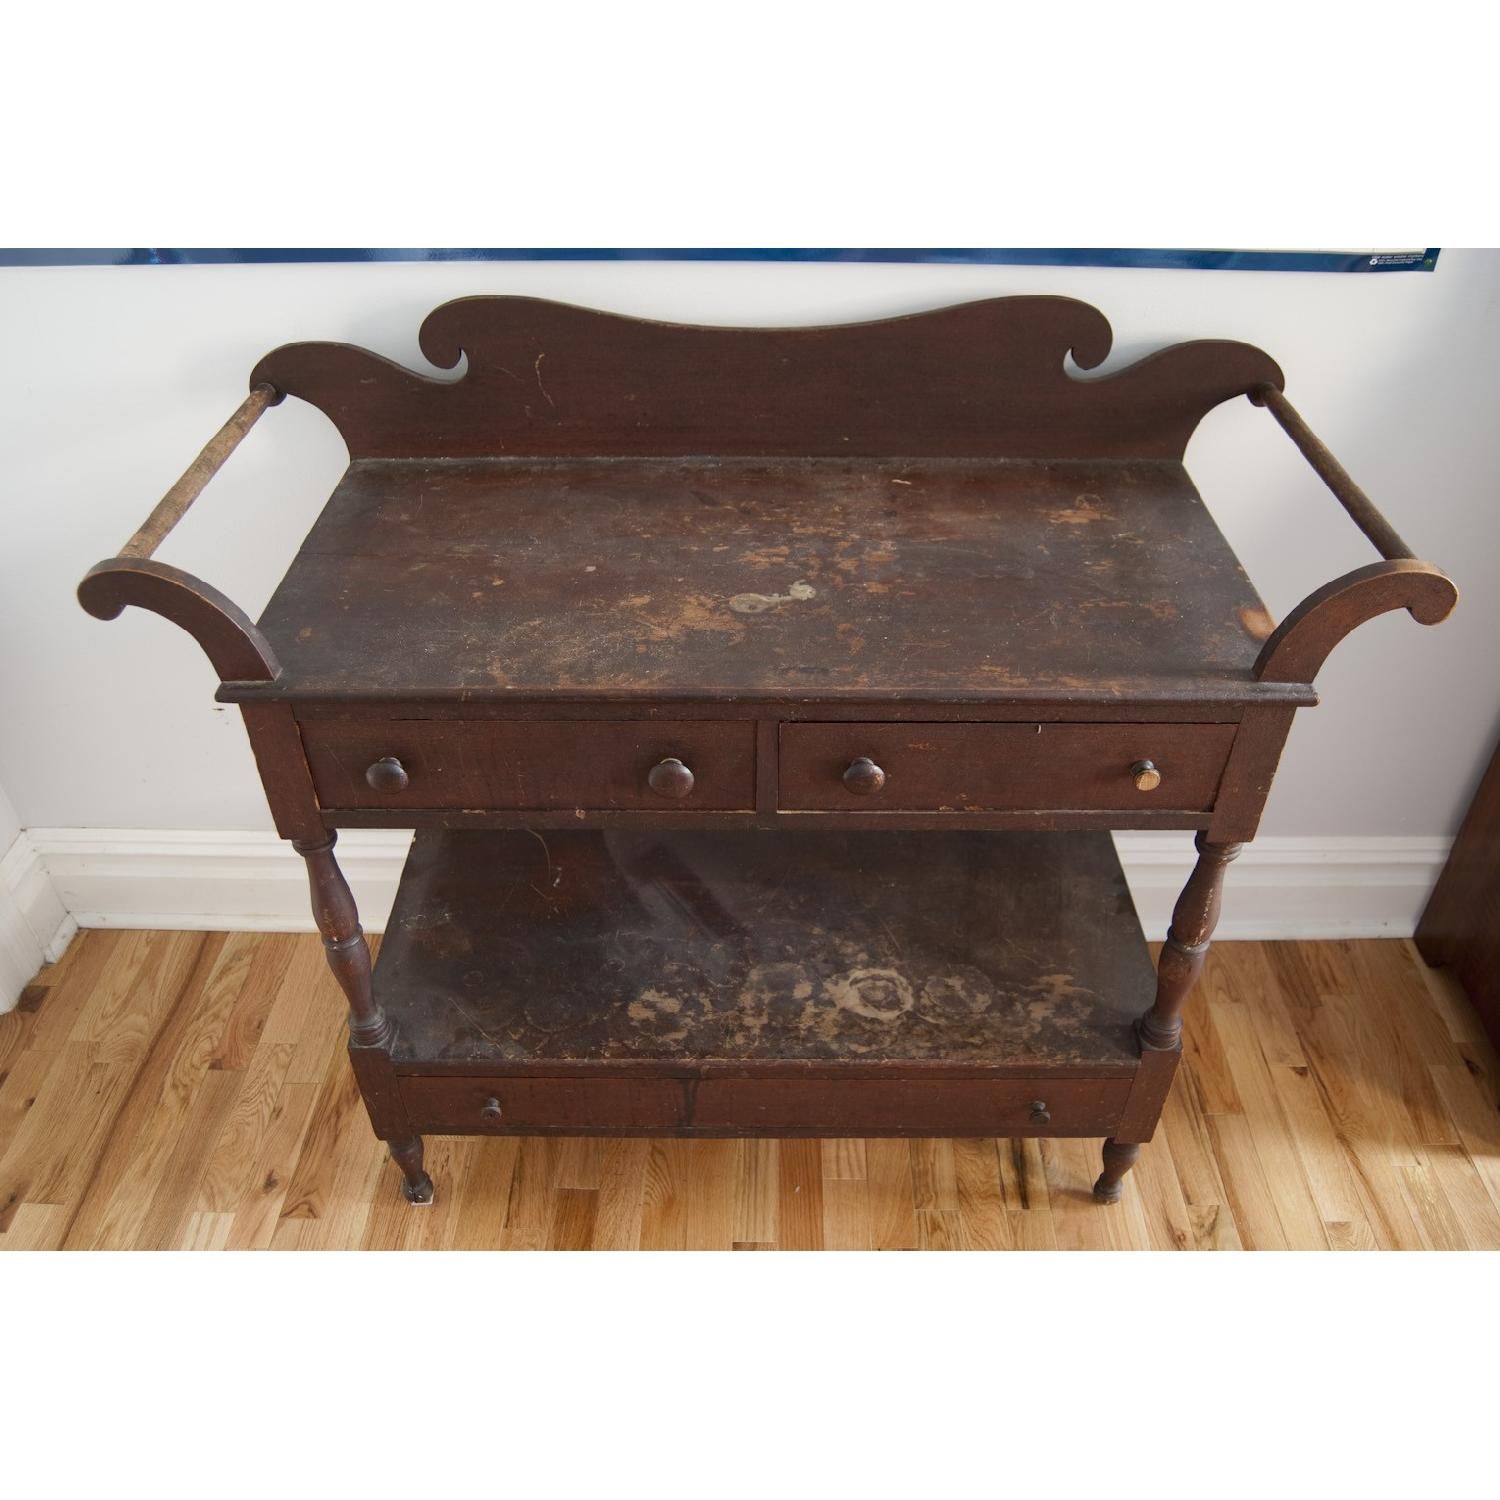 Late 1800s Solid Walnut Shaker-Style Dry Sink-6